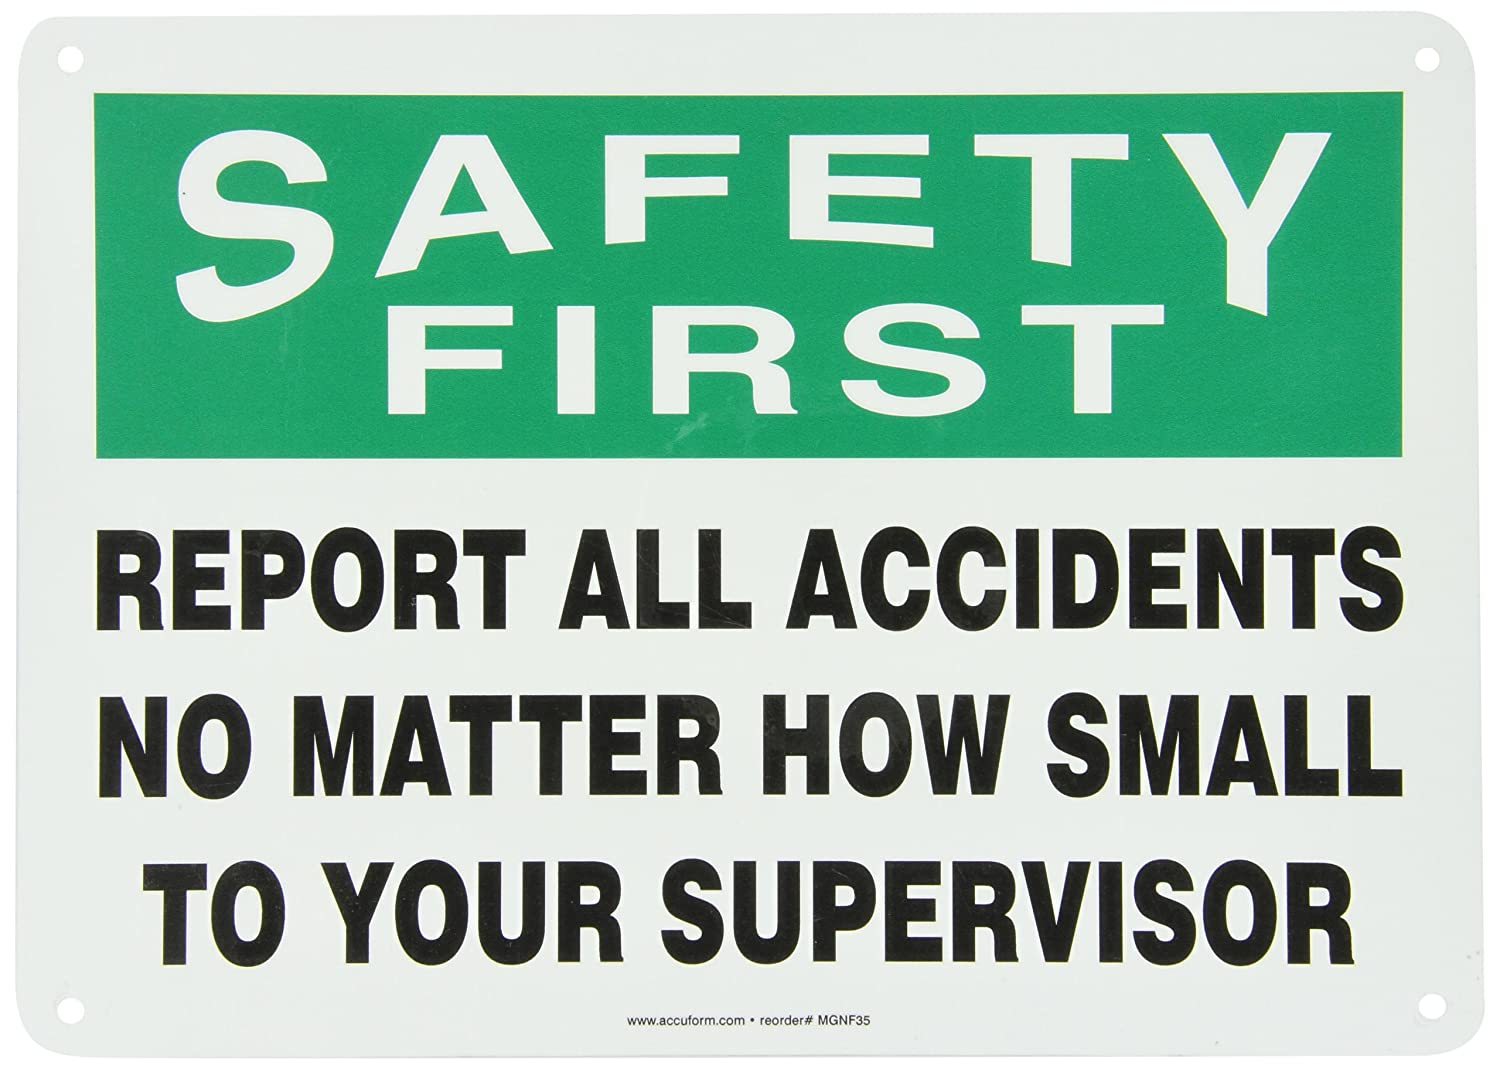 10 Length x 14 Width x 0.006 Thickness Accuform MGSH904XV Adhesive Dura-Vinyl Sign Black//Green on White LegendSAFETY FIRST REPORT ALL ACCIDENTS NO MATTER HOW SMALL